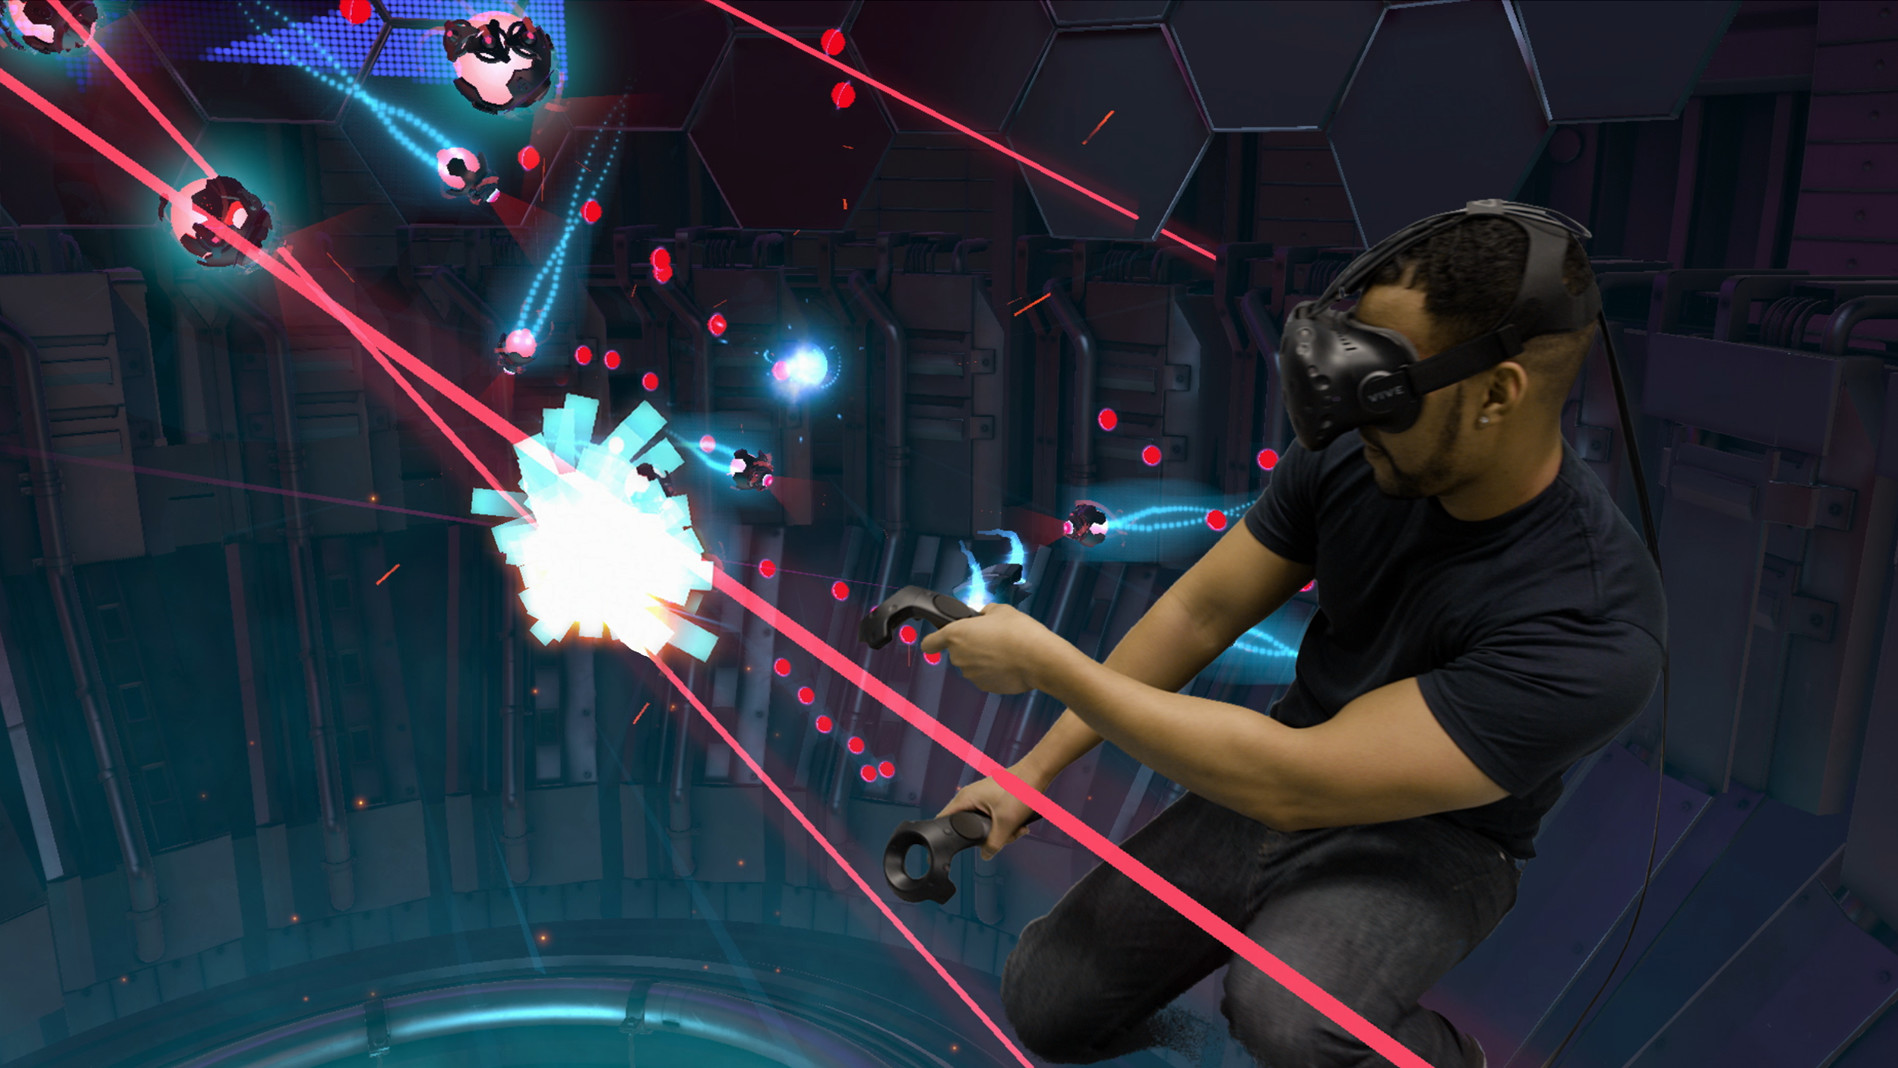 VR Event Booth Games: The Lab – Xortex 26XX Review